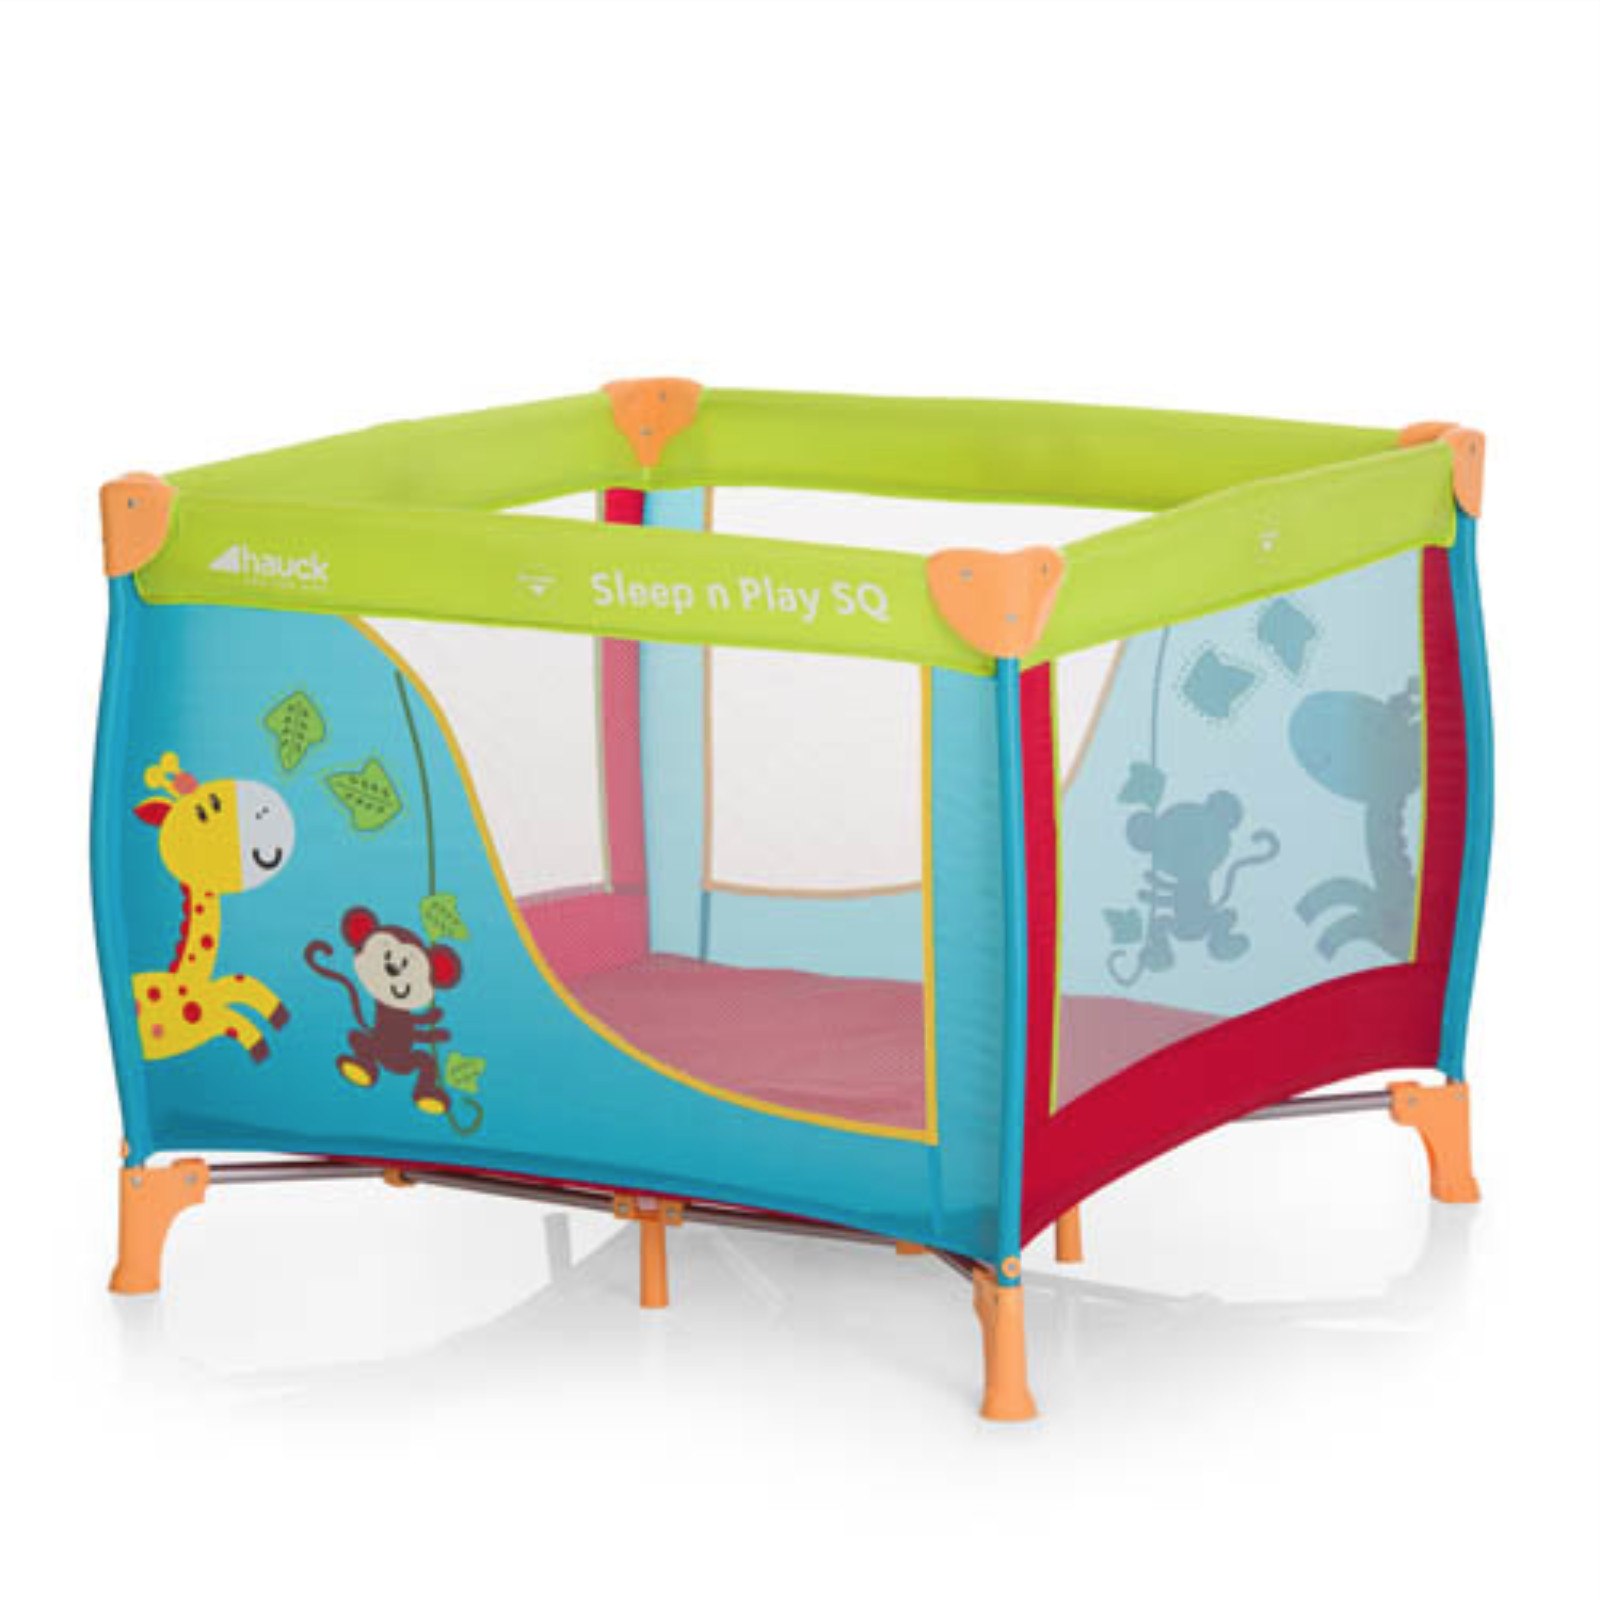 Hauck Dream n Play Square Travel Cot Playpen Jungle Fun